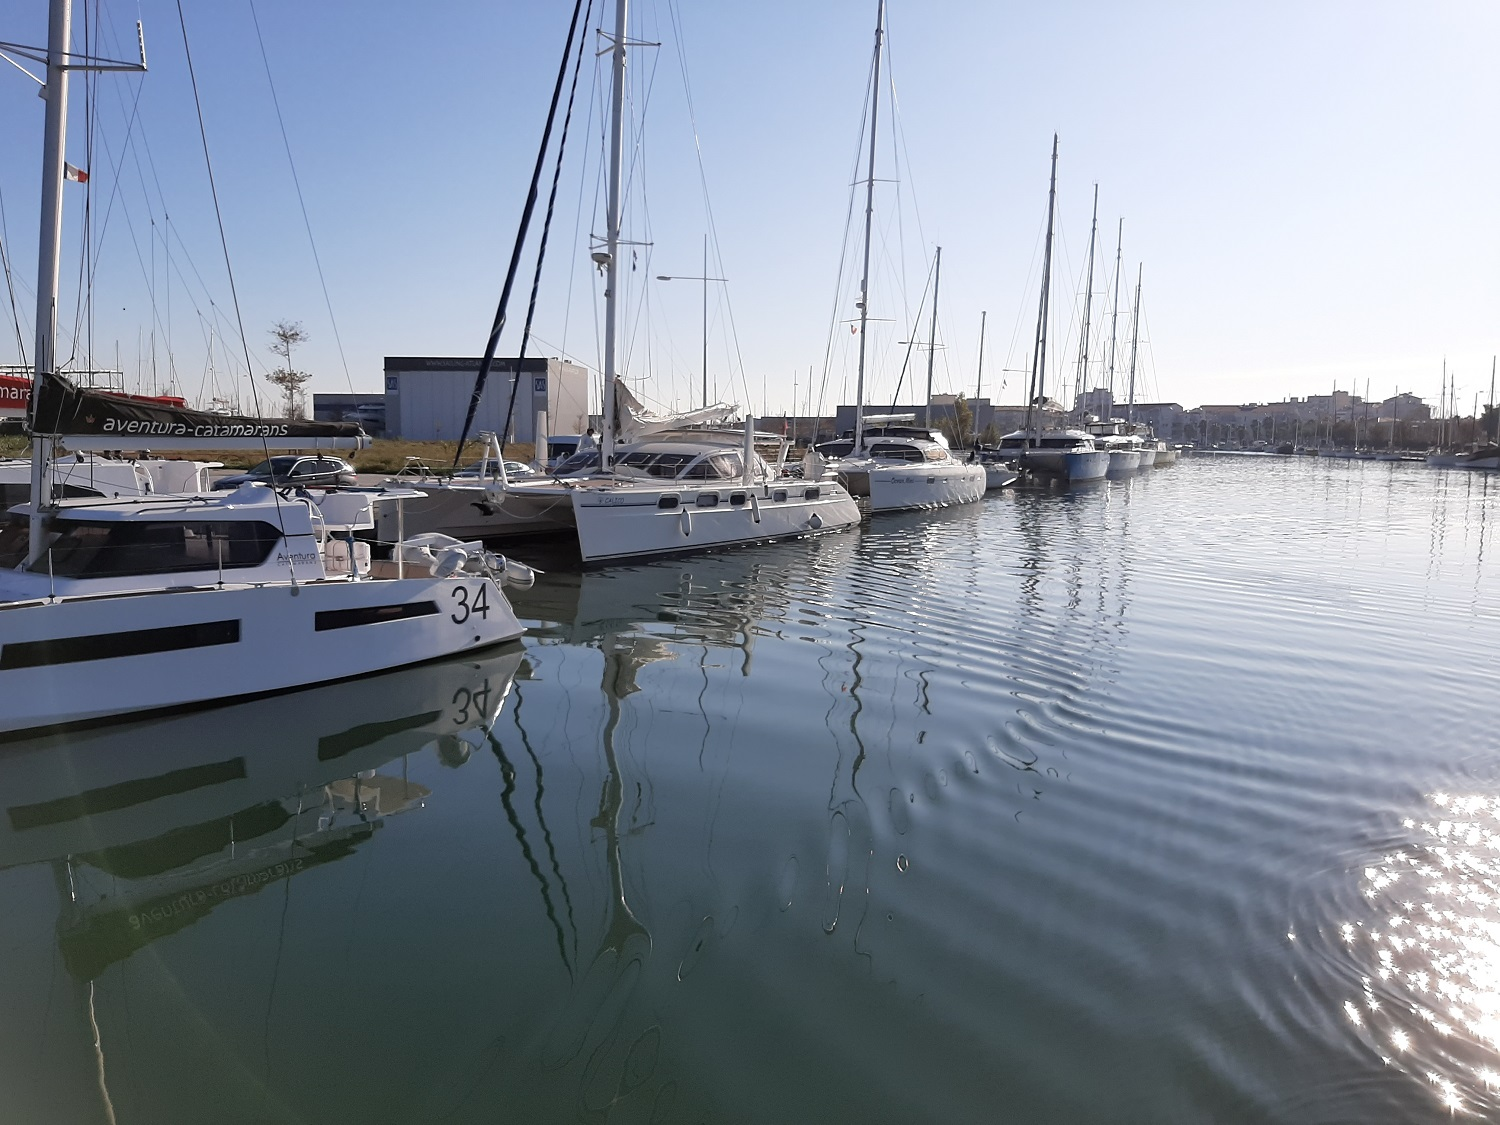 Canet en Roussillon - many catamarans